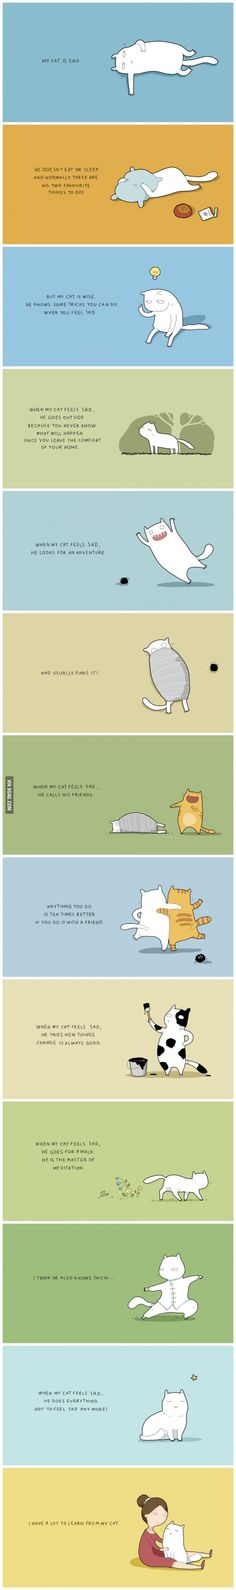 What to learn from a cat.  #illustration #storytelling